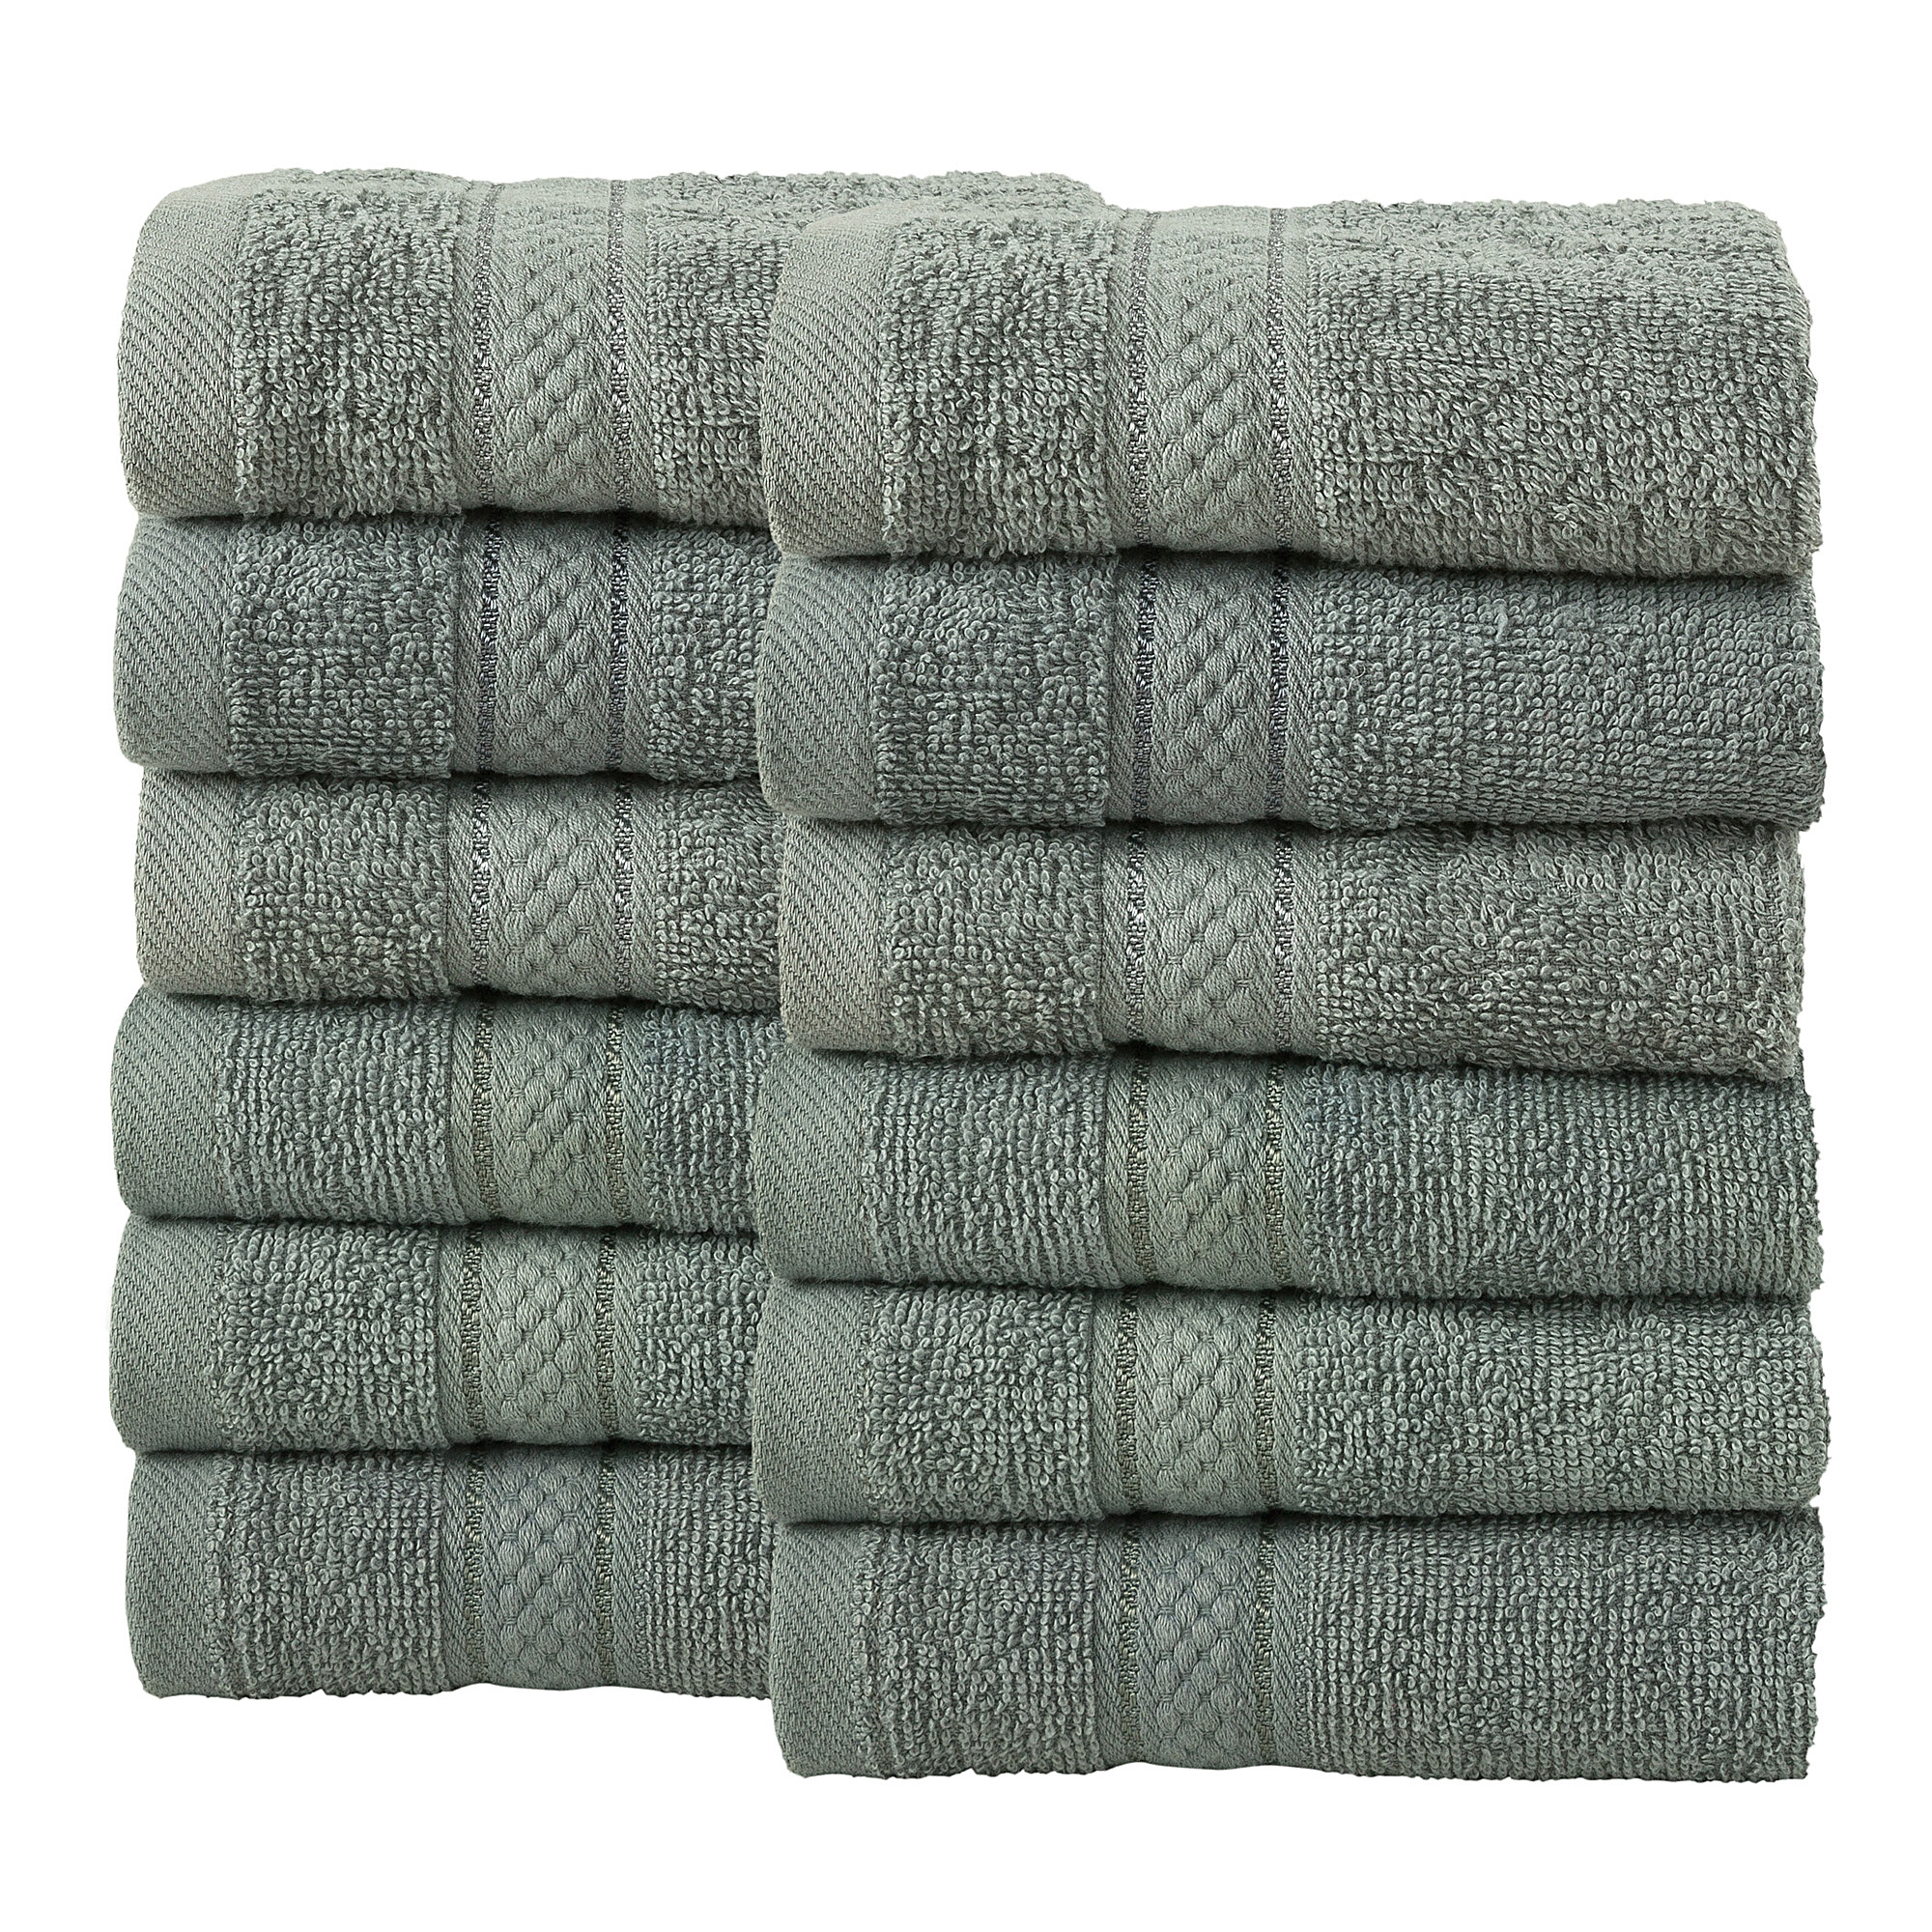 12 Pcs Face Cotton Towel Bale Set Silver Plain